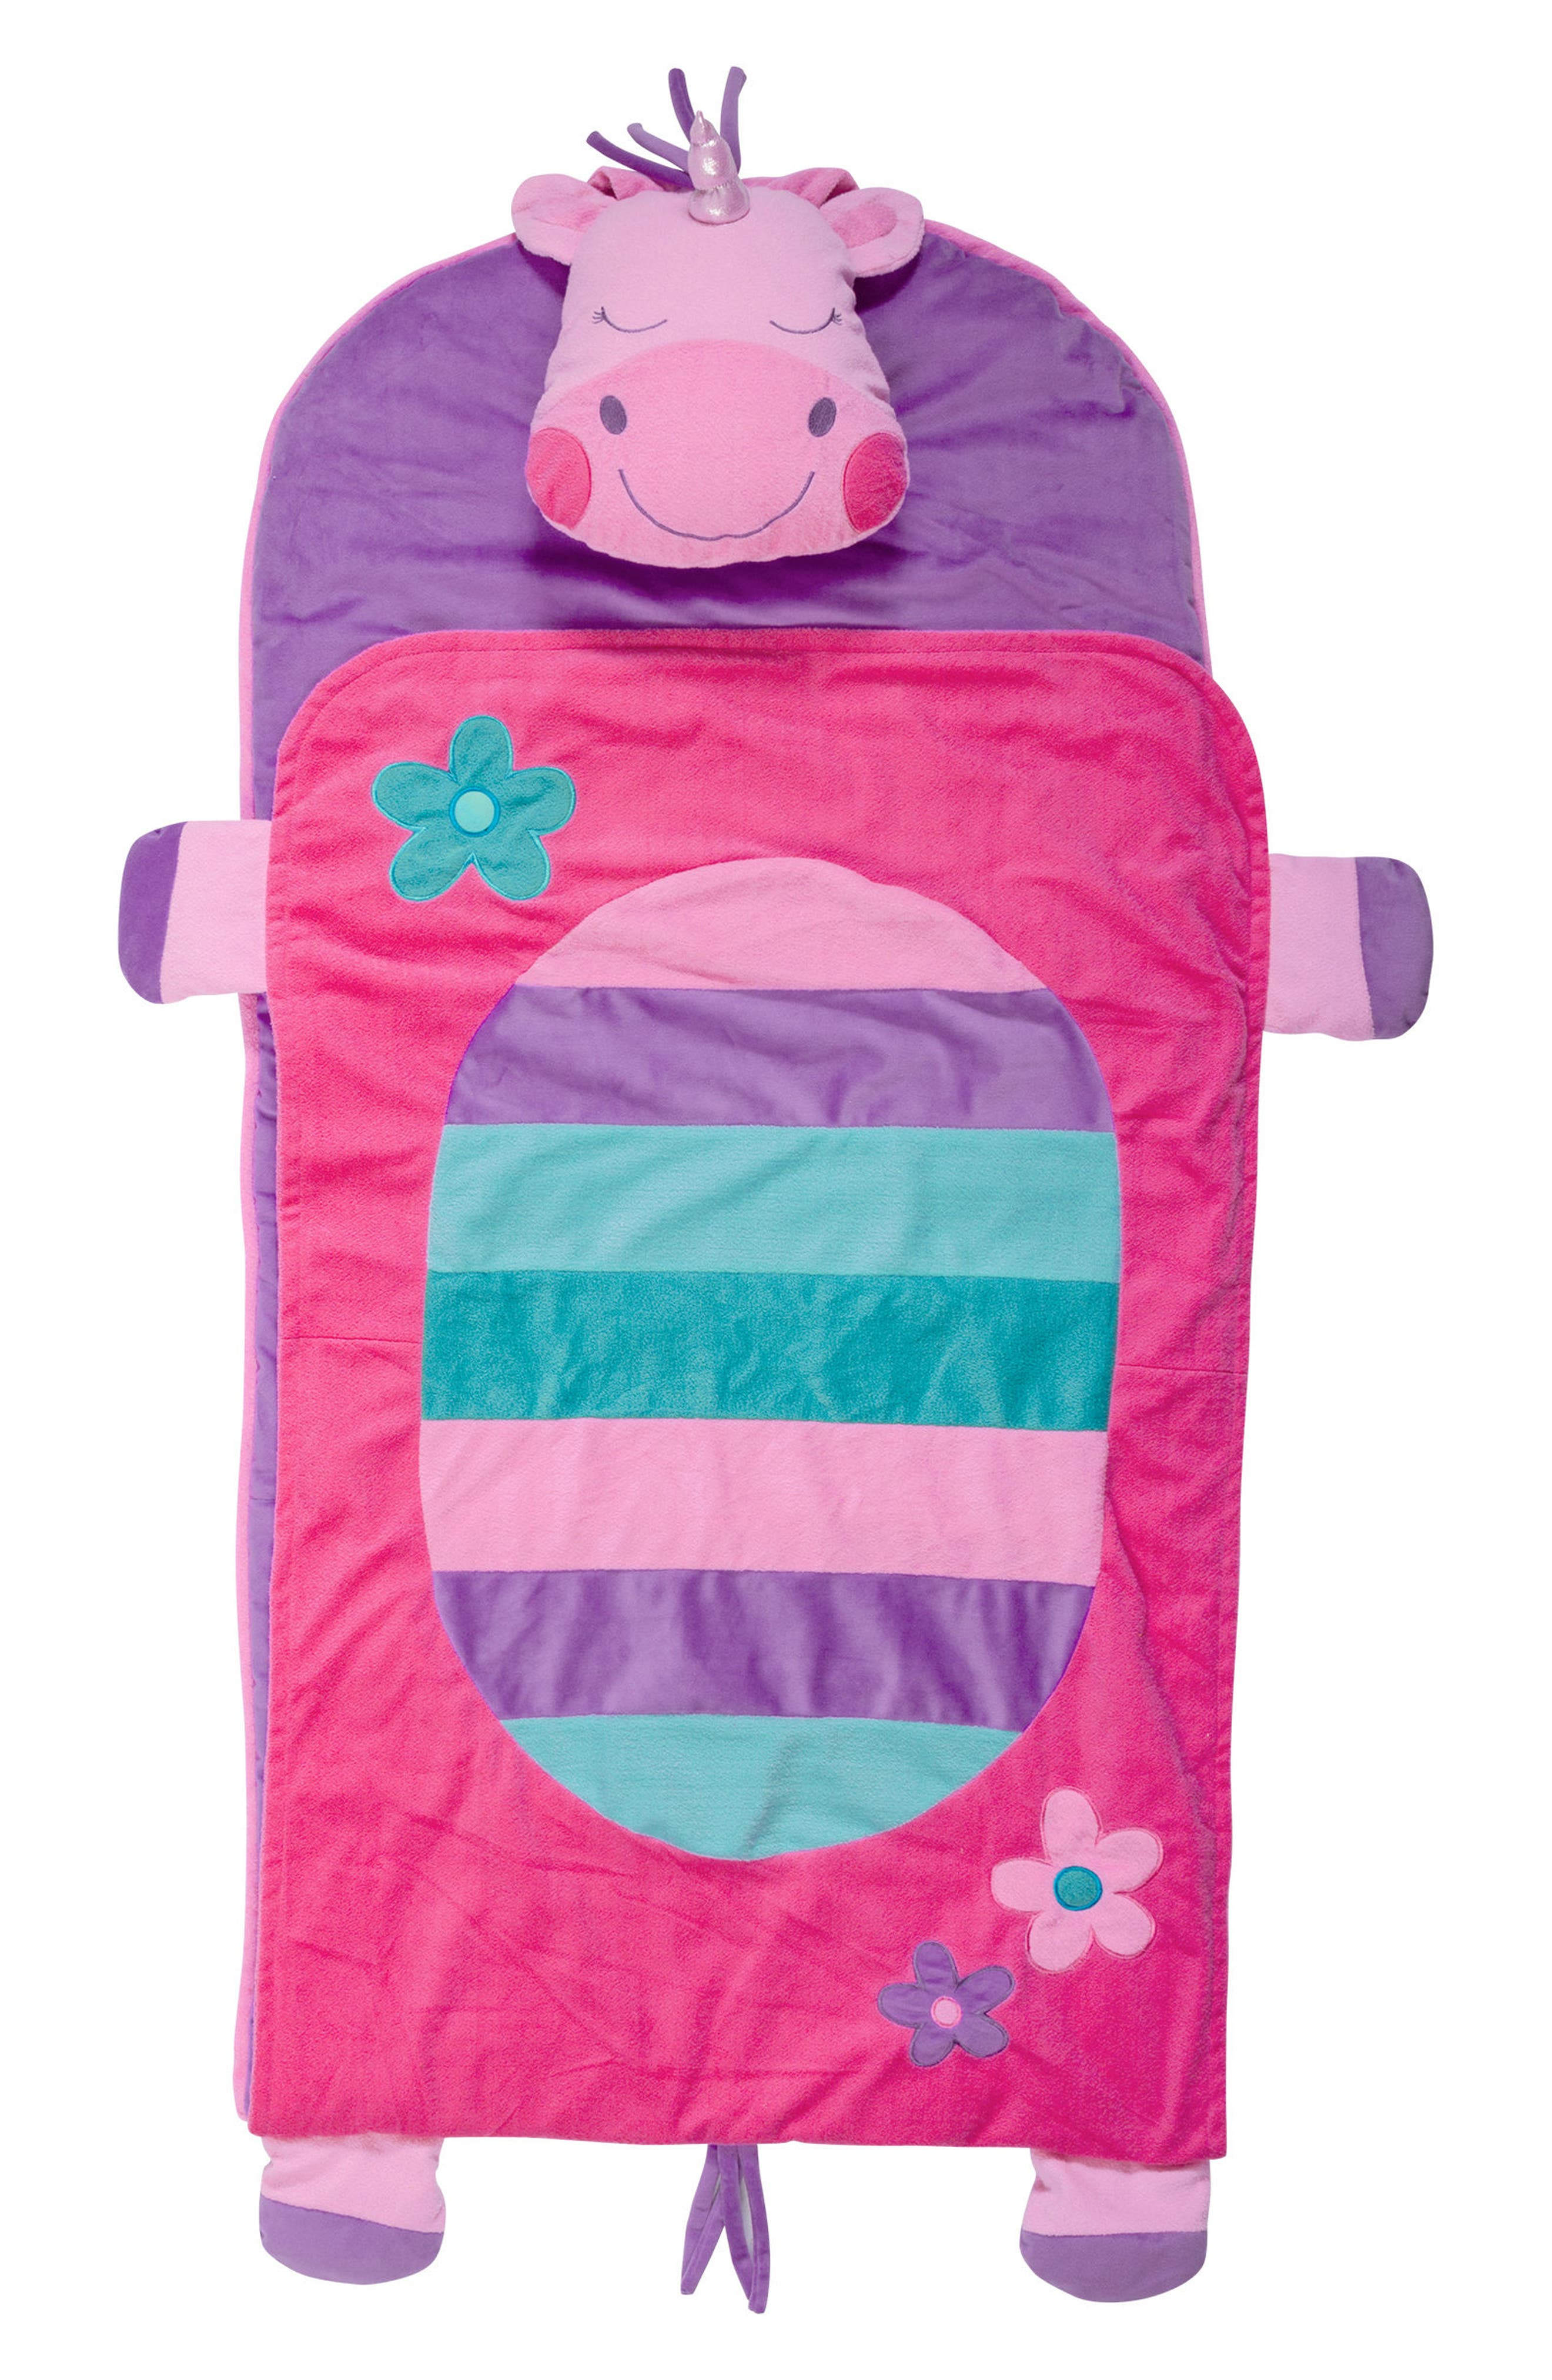 Stephen Joseph Portable Nap Mat, Pillow & Blanket